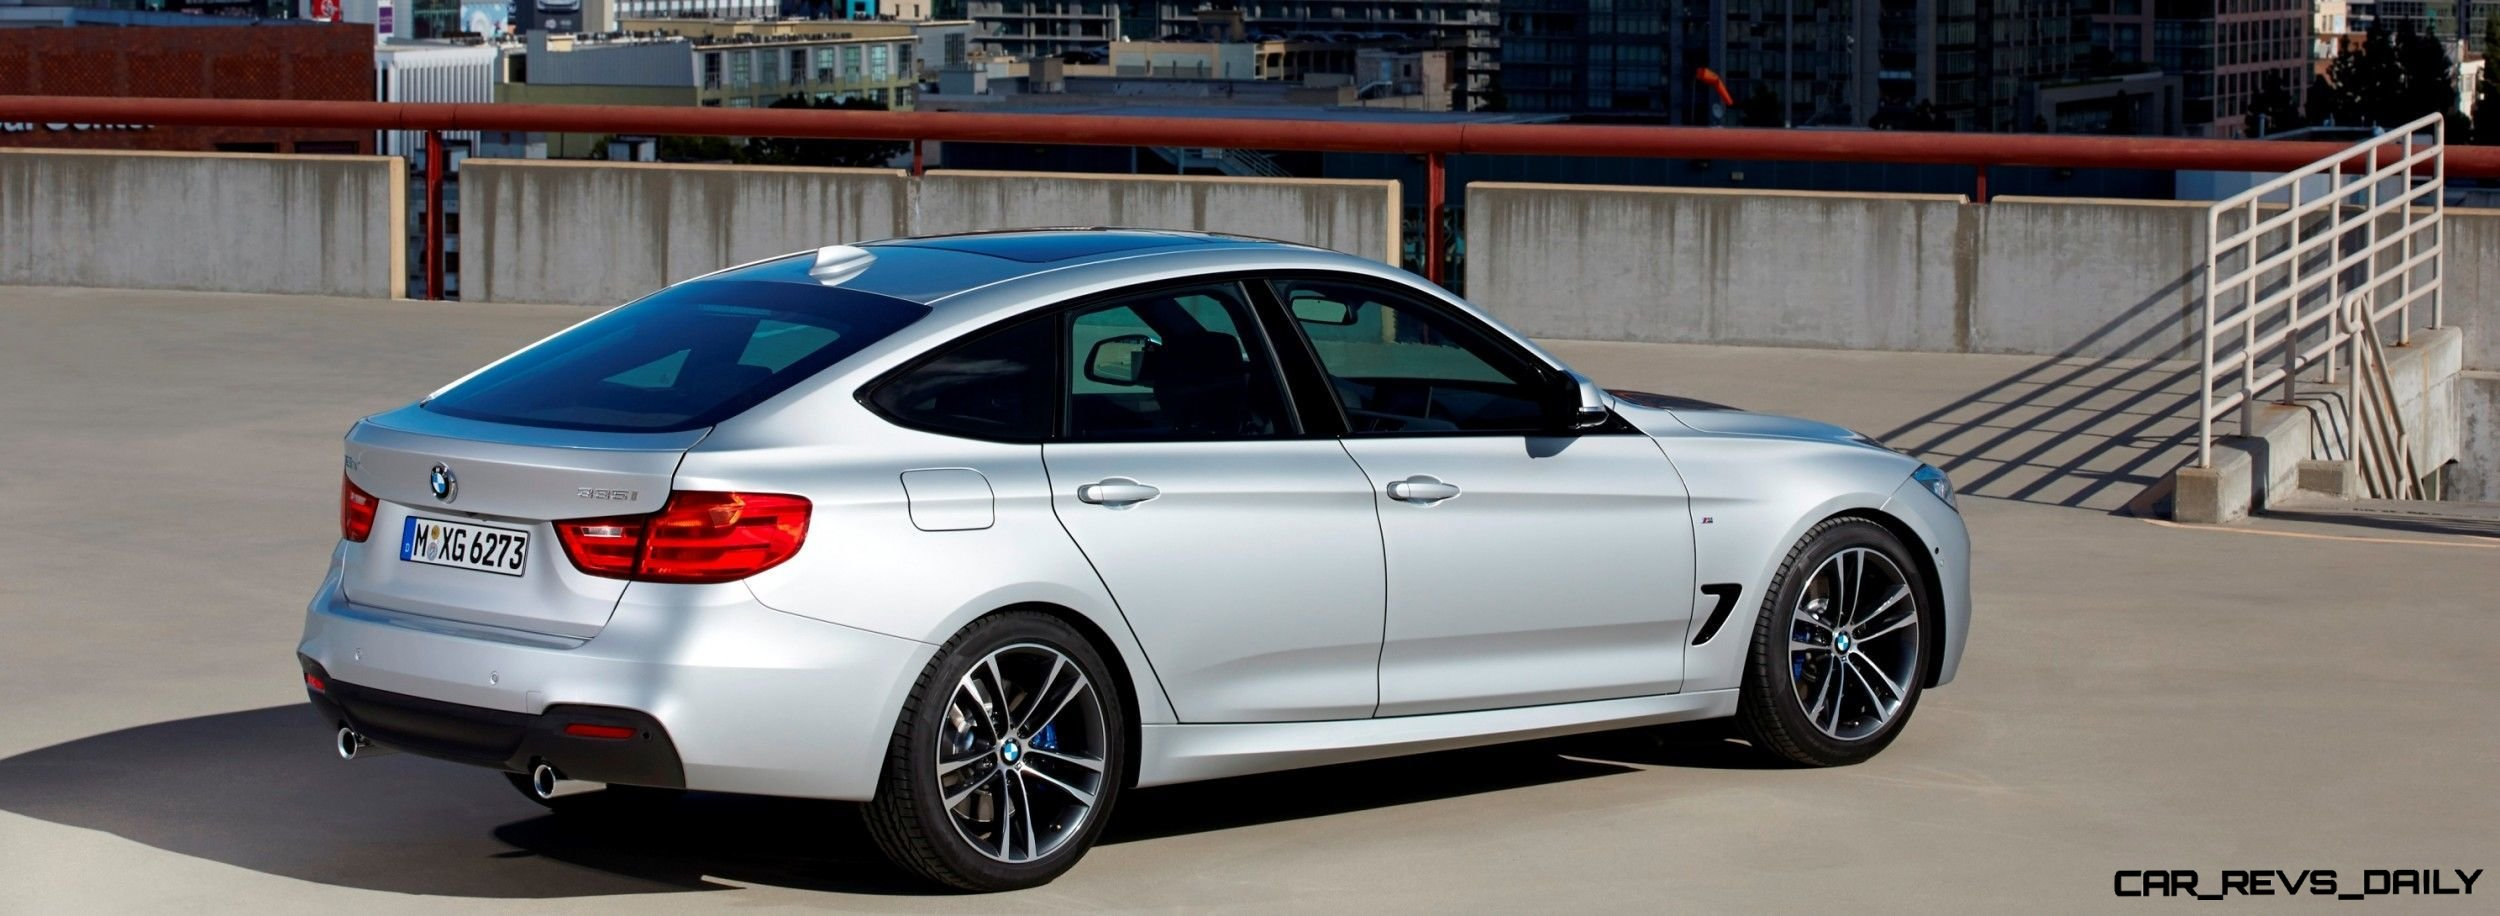 Best of Awards  1000 miles at 100MPH  2014 M Sport BMW 335i GT 72